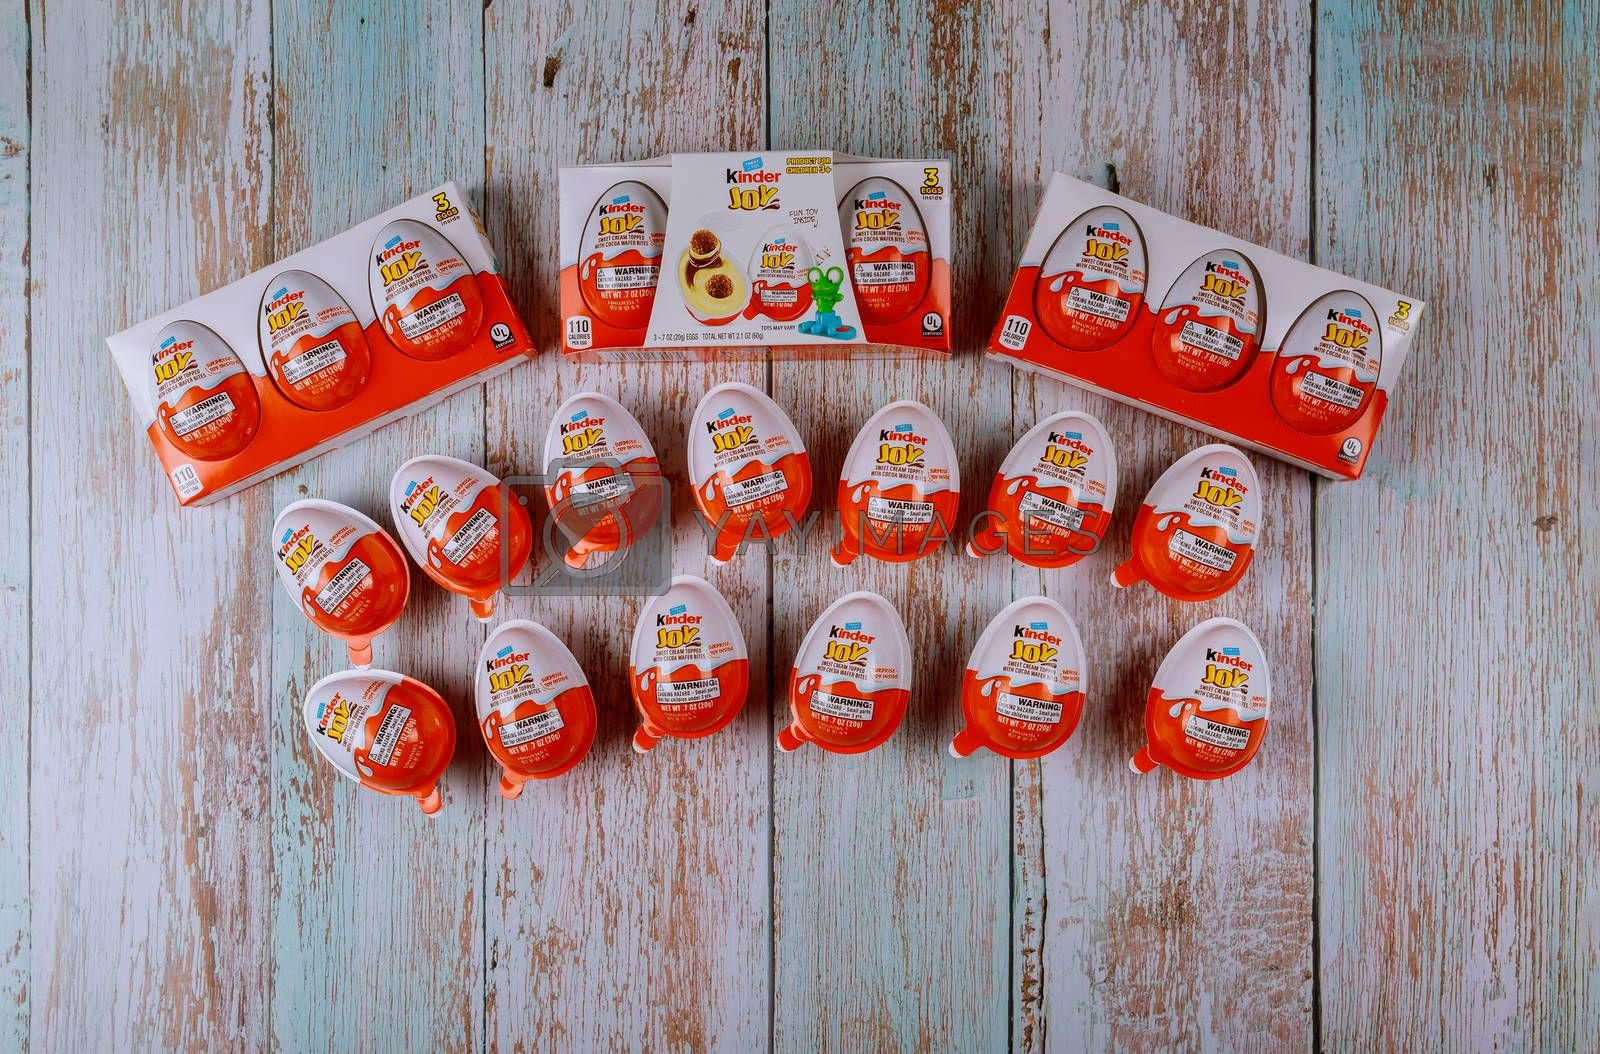 Kinder Surprise chocolate eggs are a confection manufactured by Ferrero company and containing a small toy. by ungvar